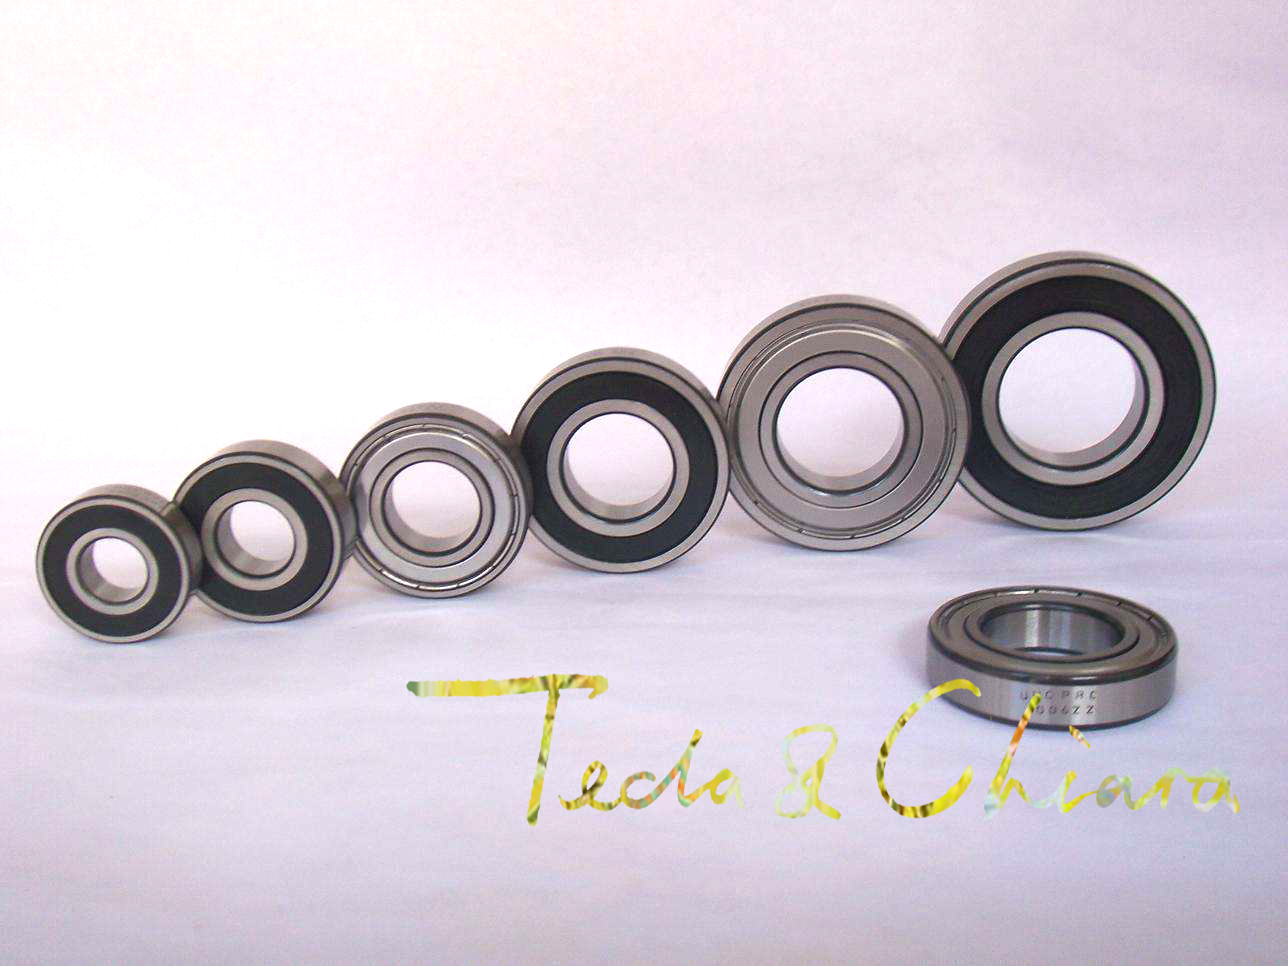 605 605ZZ 605RS 605-2Z 605Z 605-2RS ZZ RS RZ 2RZ Deep Groove Ball Bearings 5 x 14 x 5mm High Quality проводной и dect телефон gaoke tech 605 605 24